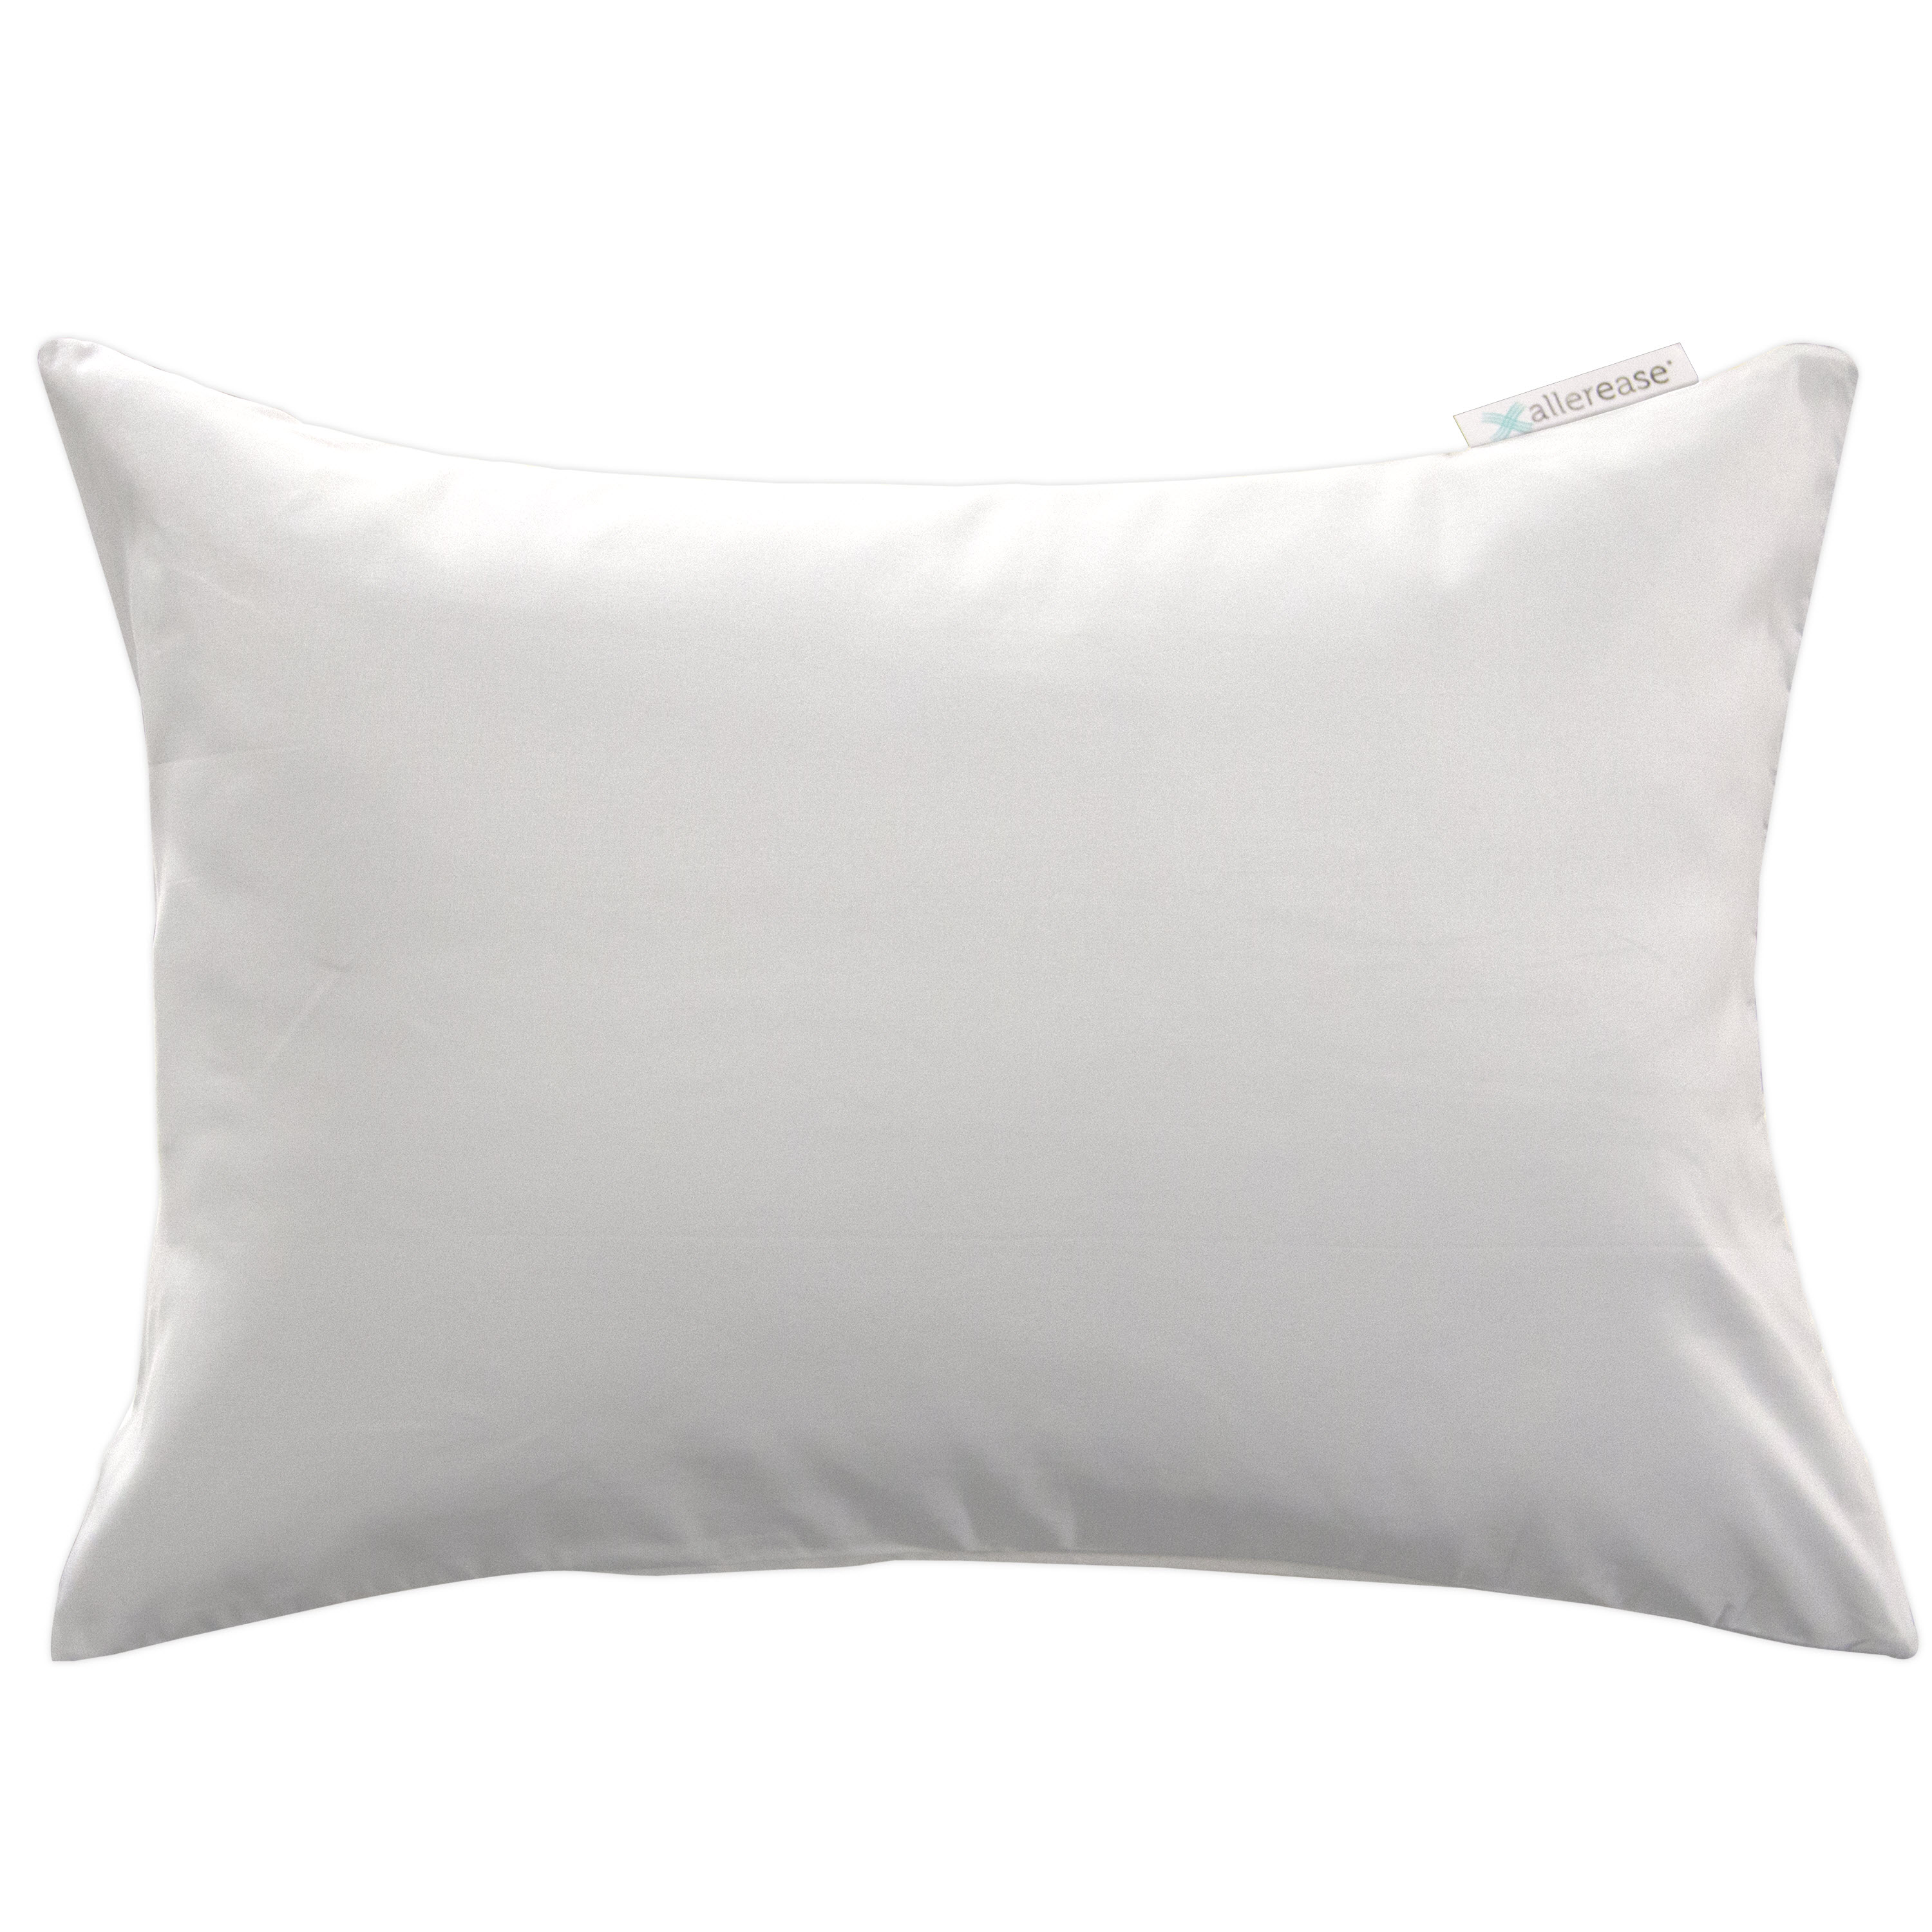 AllerEase Zippered Travel Pillow Protector, 14 in x 20 in by American Textile Company